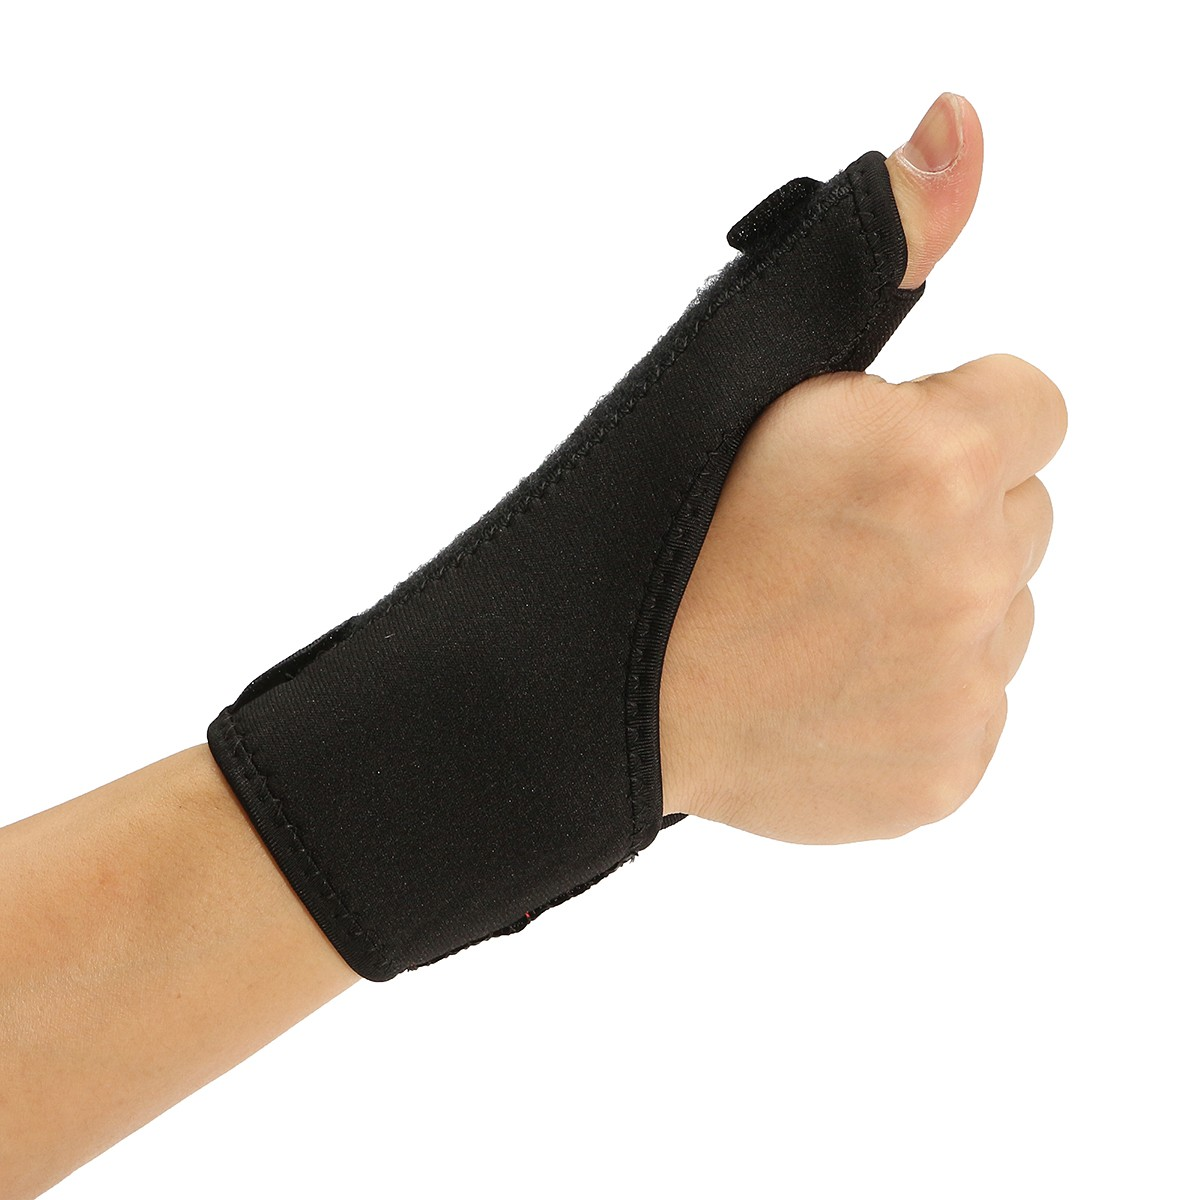 Hot Sale 1pc Practical Wrist Thumb Hand Support Brace Elastic Fitness Wrap Wrist Support Sport Training Exercise Thumb Protecter